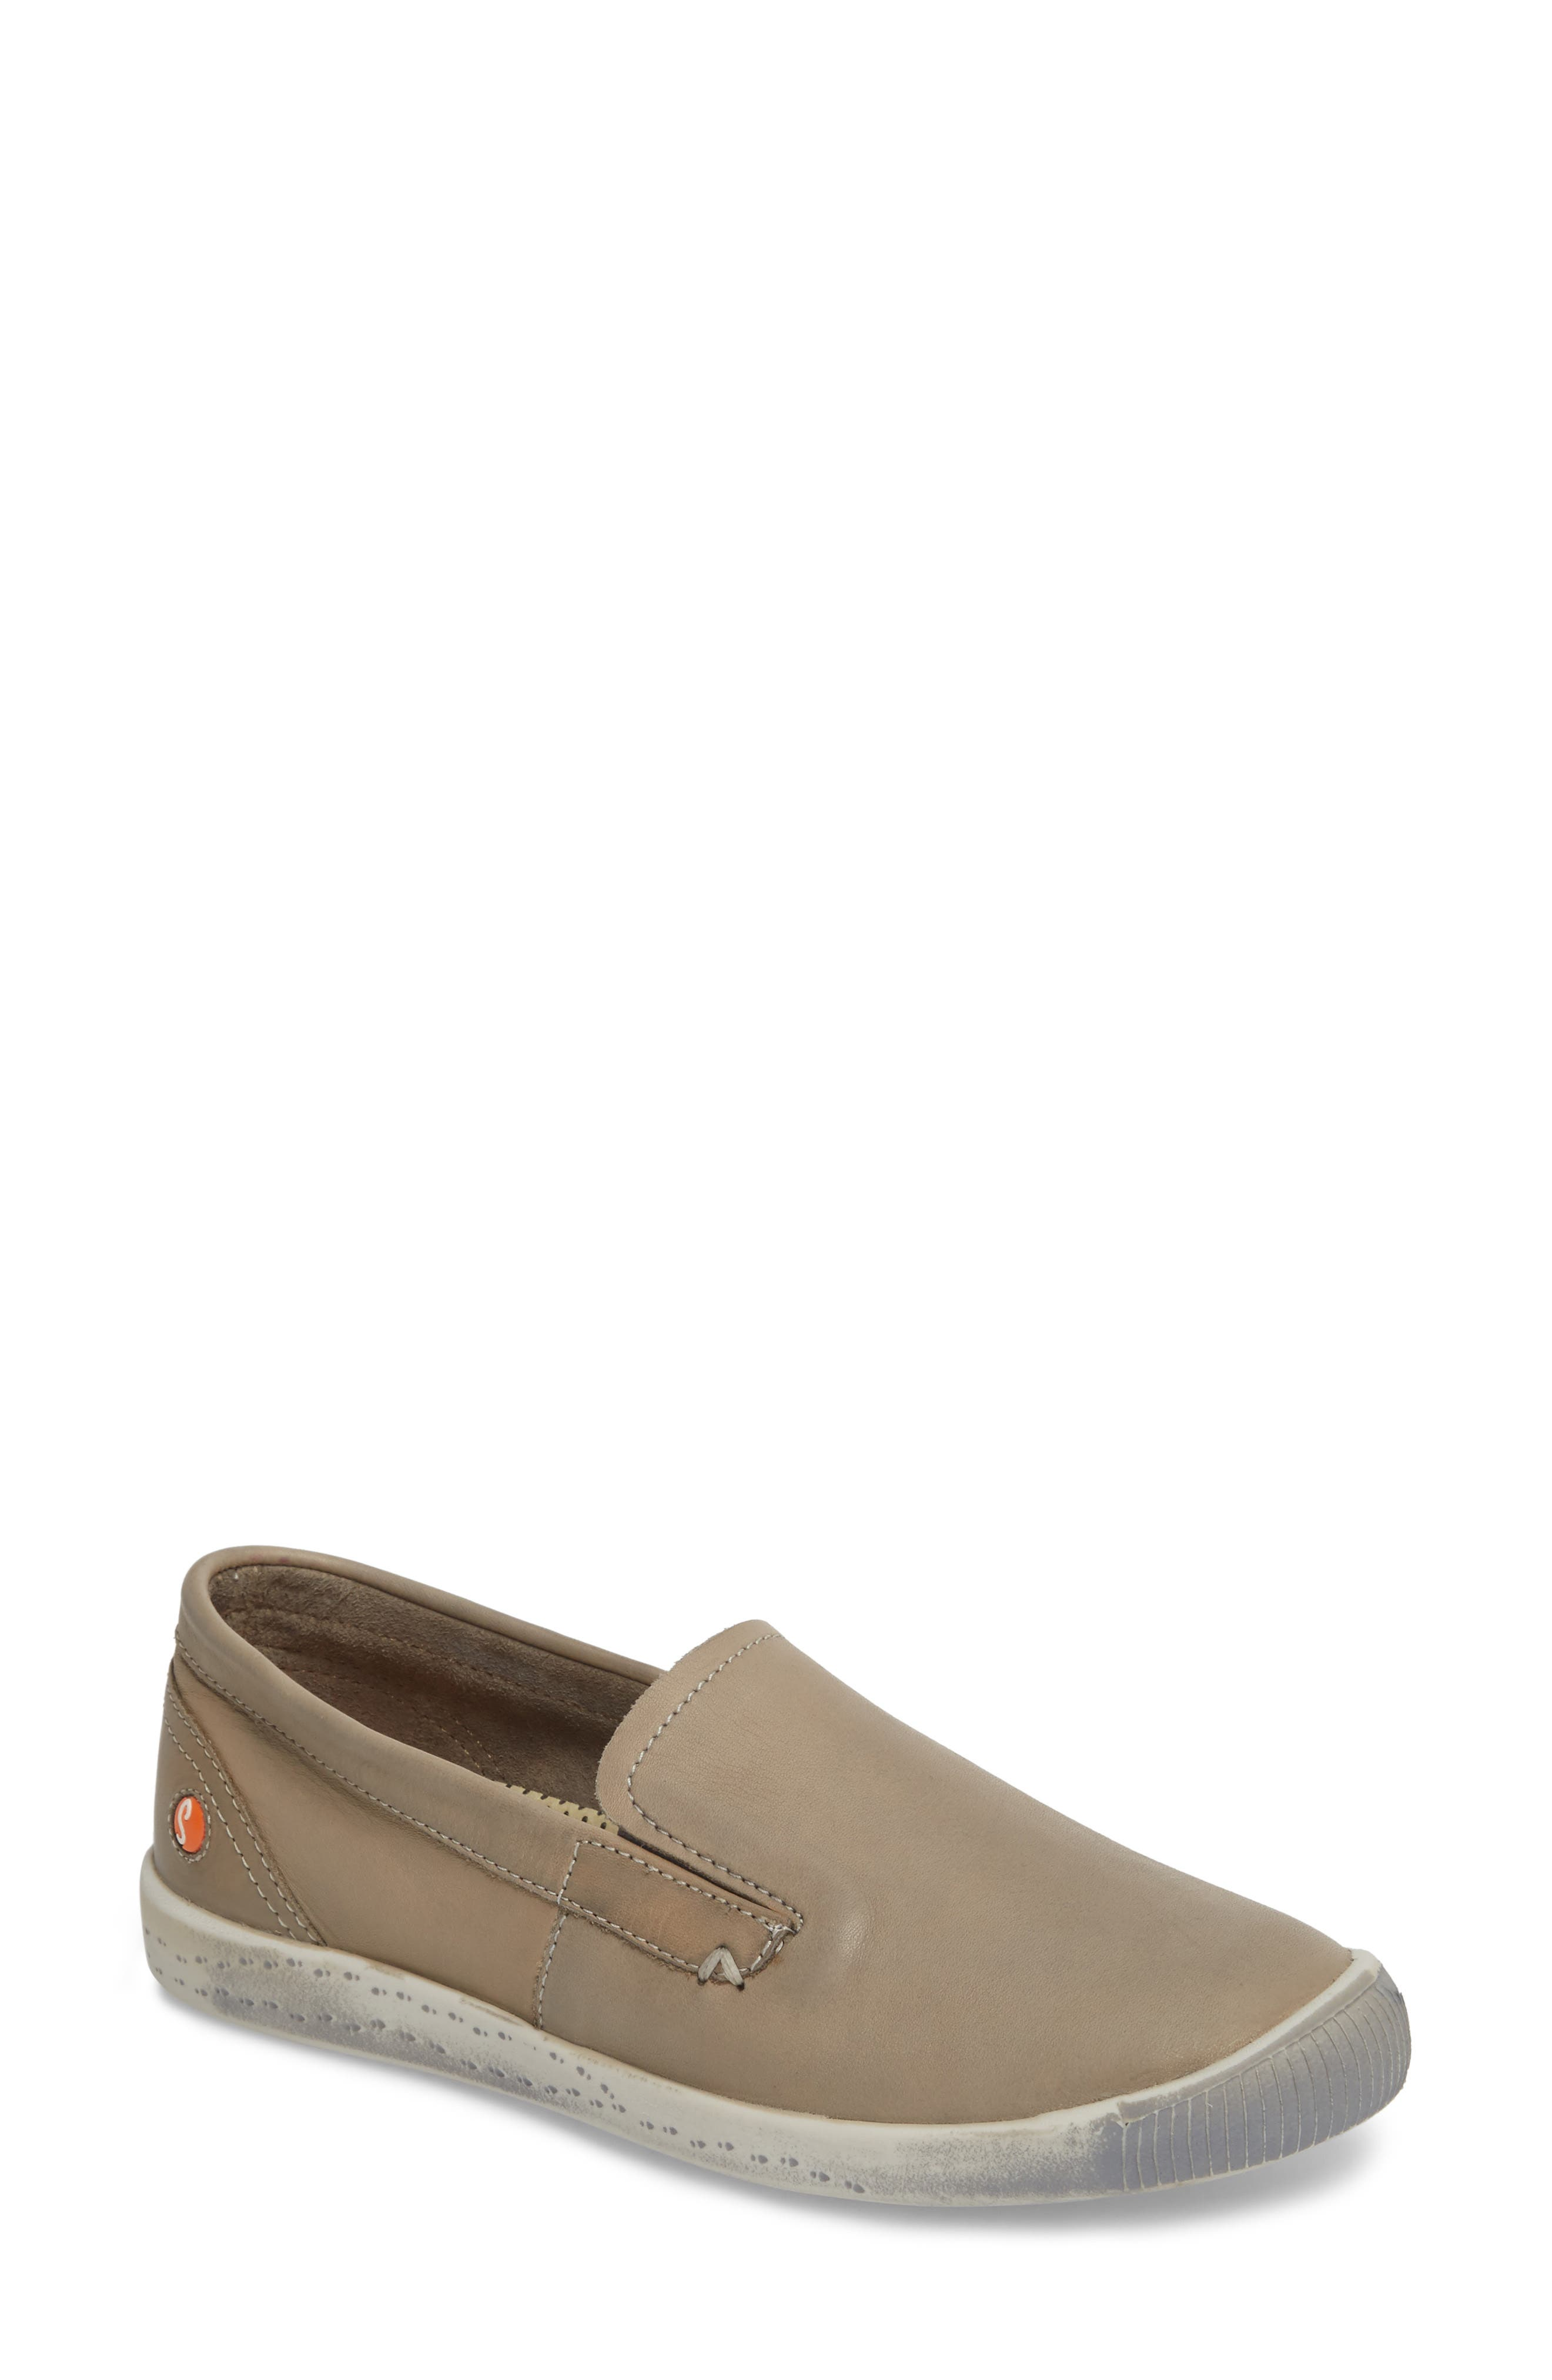 Softinos By Fly London Ita Slip-On Sneaker - Brown